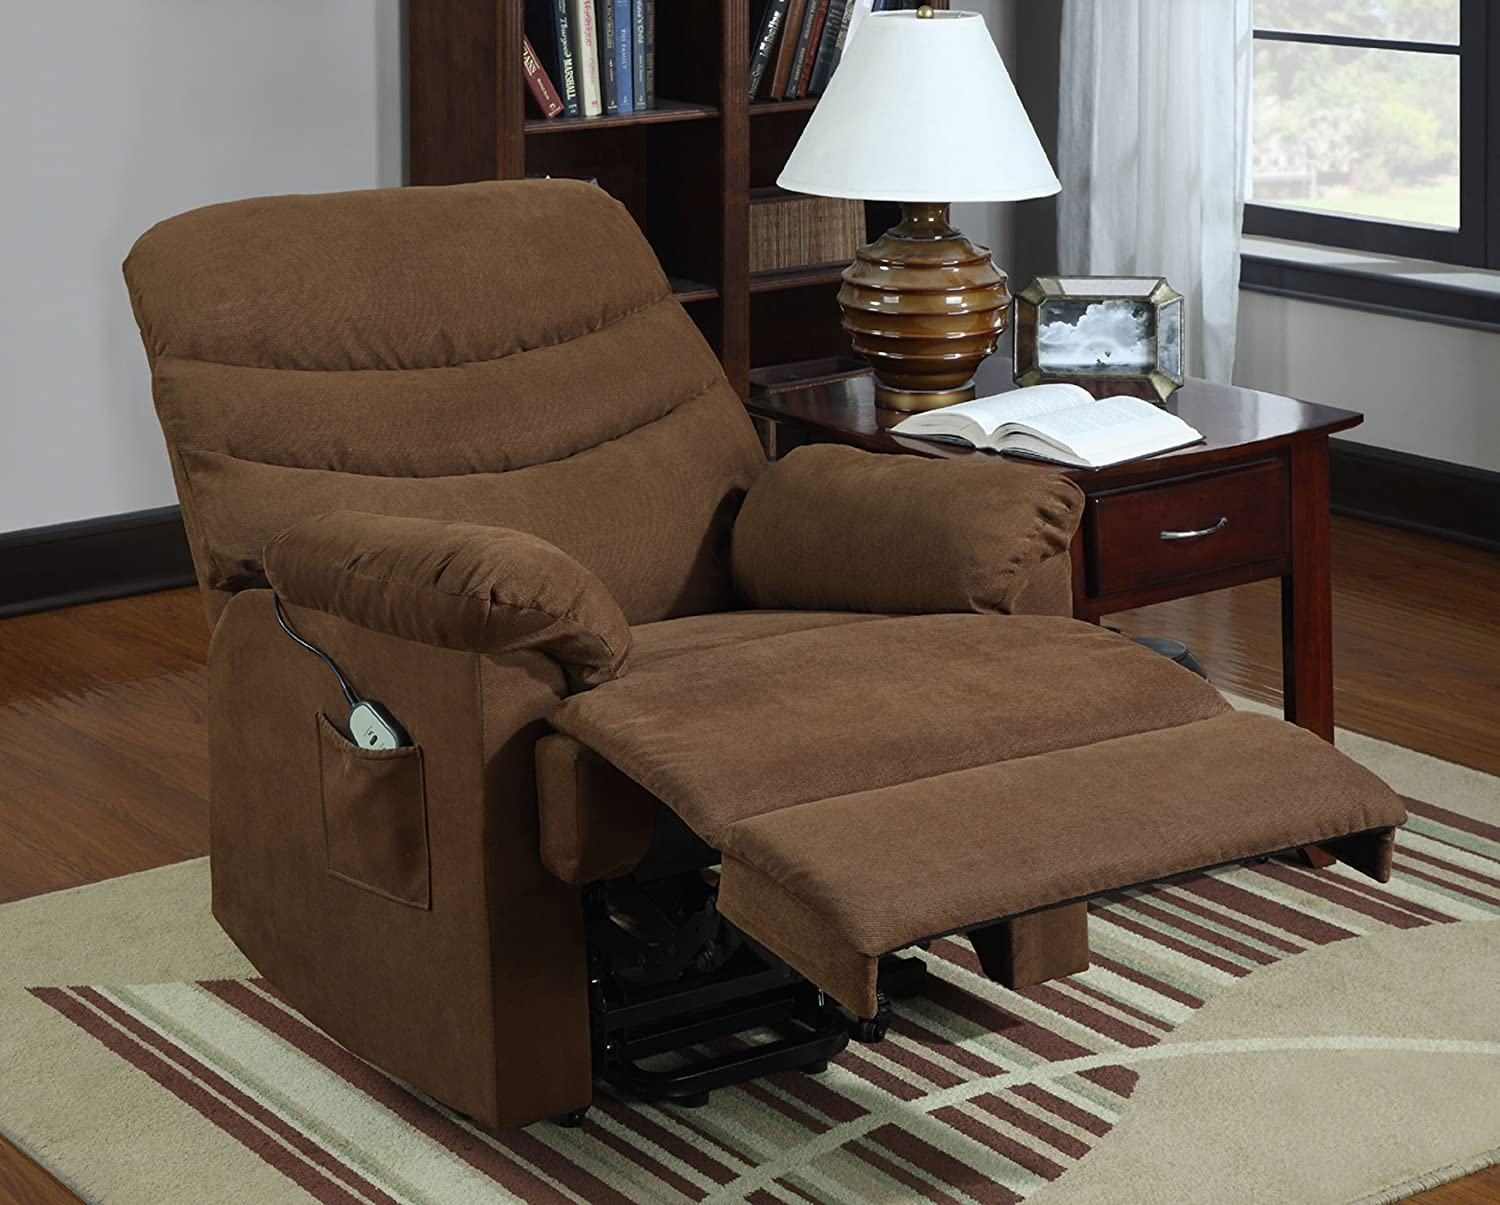 Amazon.com Homelegance Elevated 9769BR-1LT Power Lift and Recline Chair Chocolate Brown Microfiber Kitchen u0026 Dining & Amazon.com: Homelegance Elevated 9769BR-1LT Power Lift and Recline ... islam-shia.org